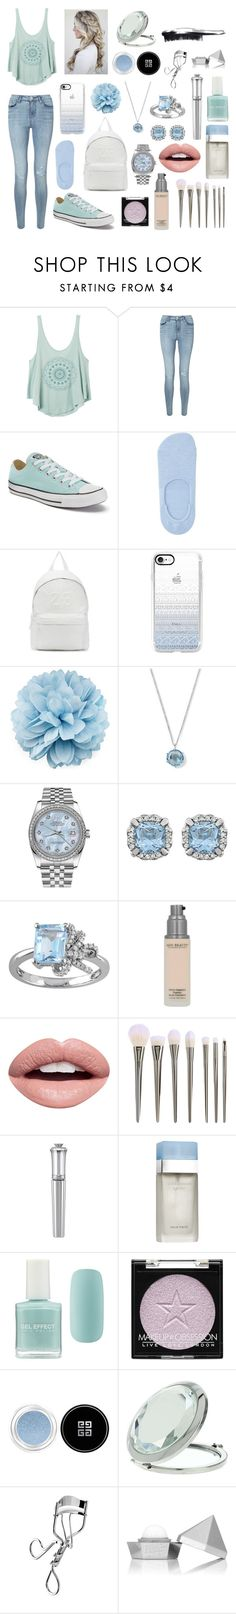 """""""Well this is a nice transition"""" by xoxobasic on Polyvore featuring RVCA, Miss Selfridge, Converse, Uniqlo, Joshua's, Casetify, Gucci, Ippolita, Rolex and Laura Ashley"""